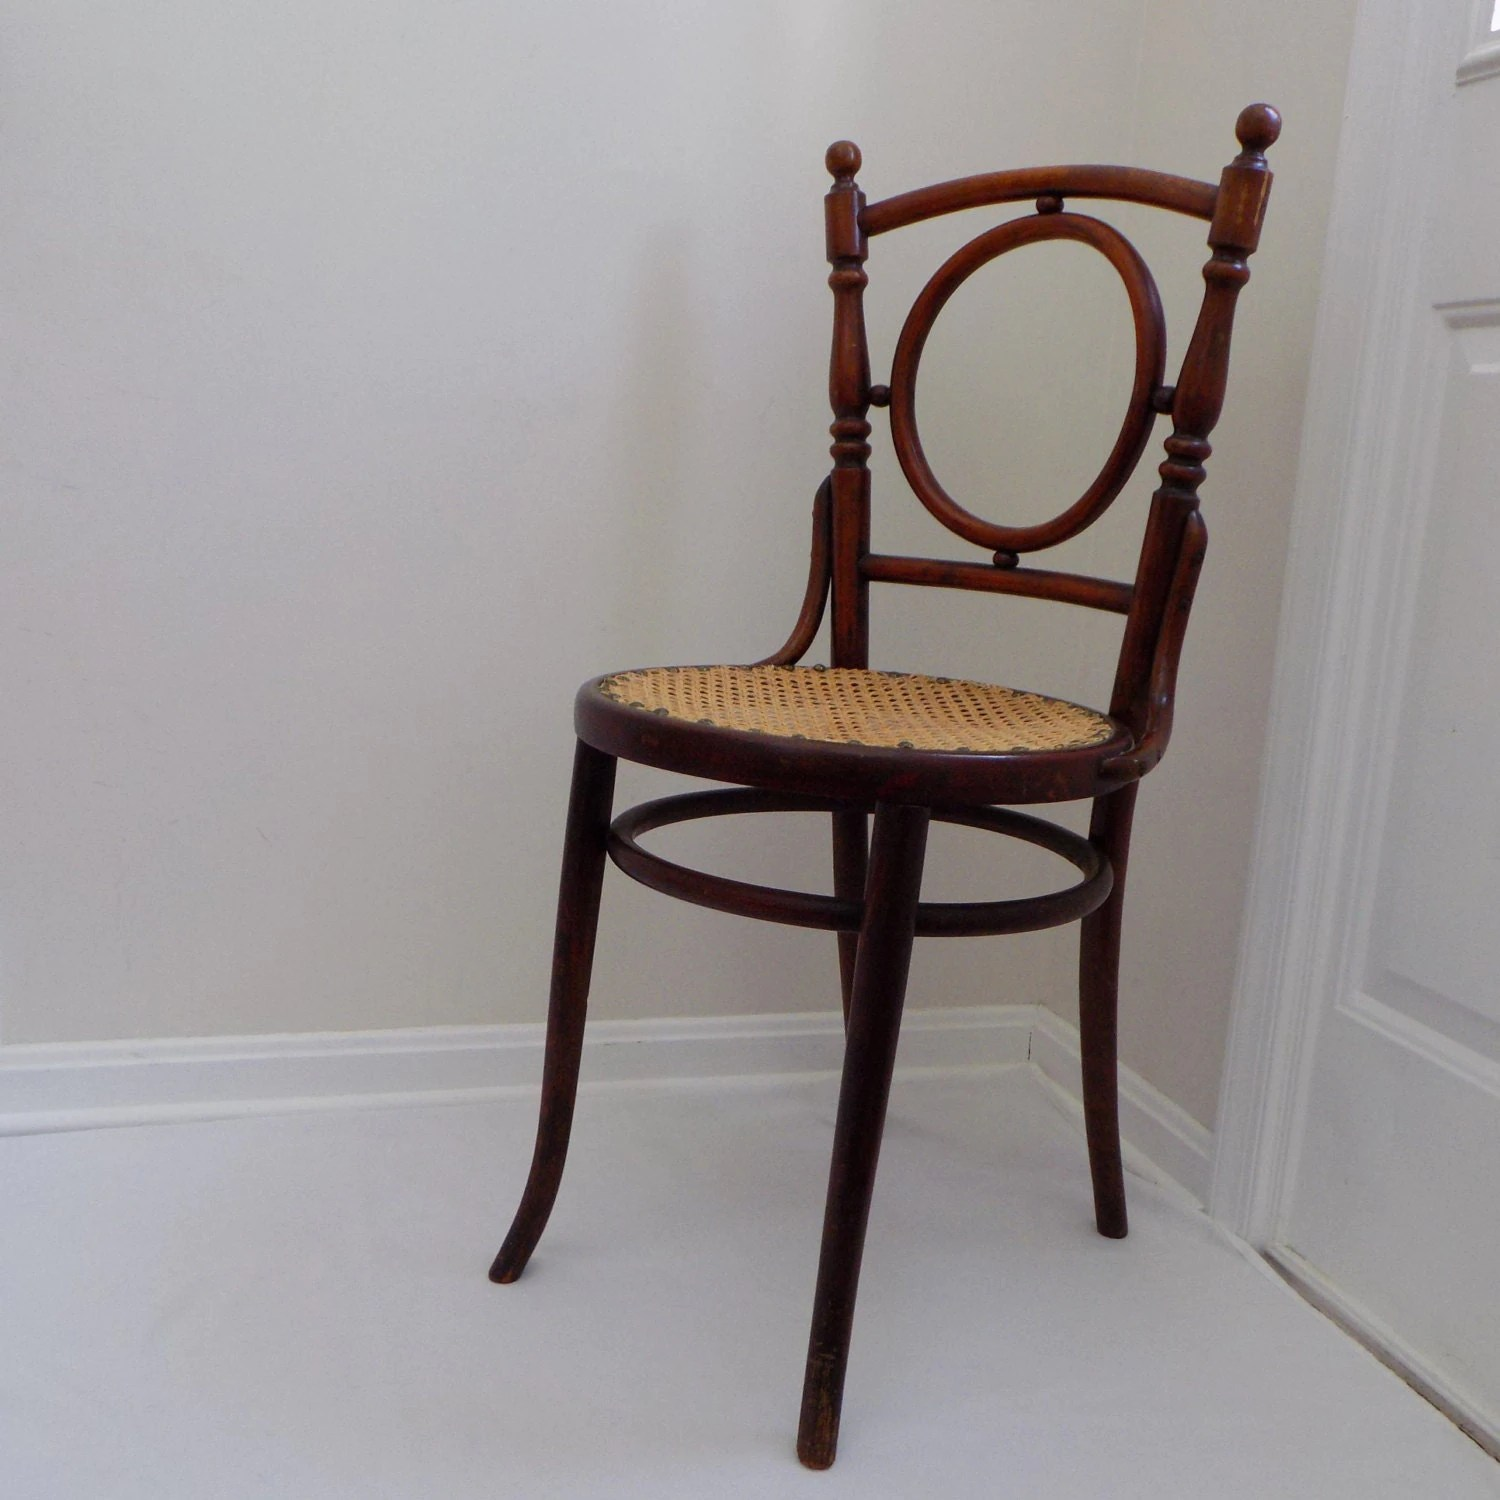 bentwood cane seat chairs grey and white chair circa 1900 antique fischel wood parlor